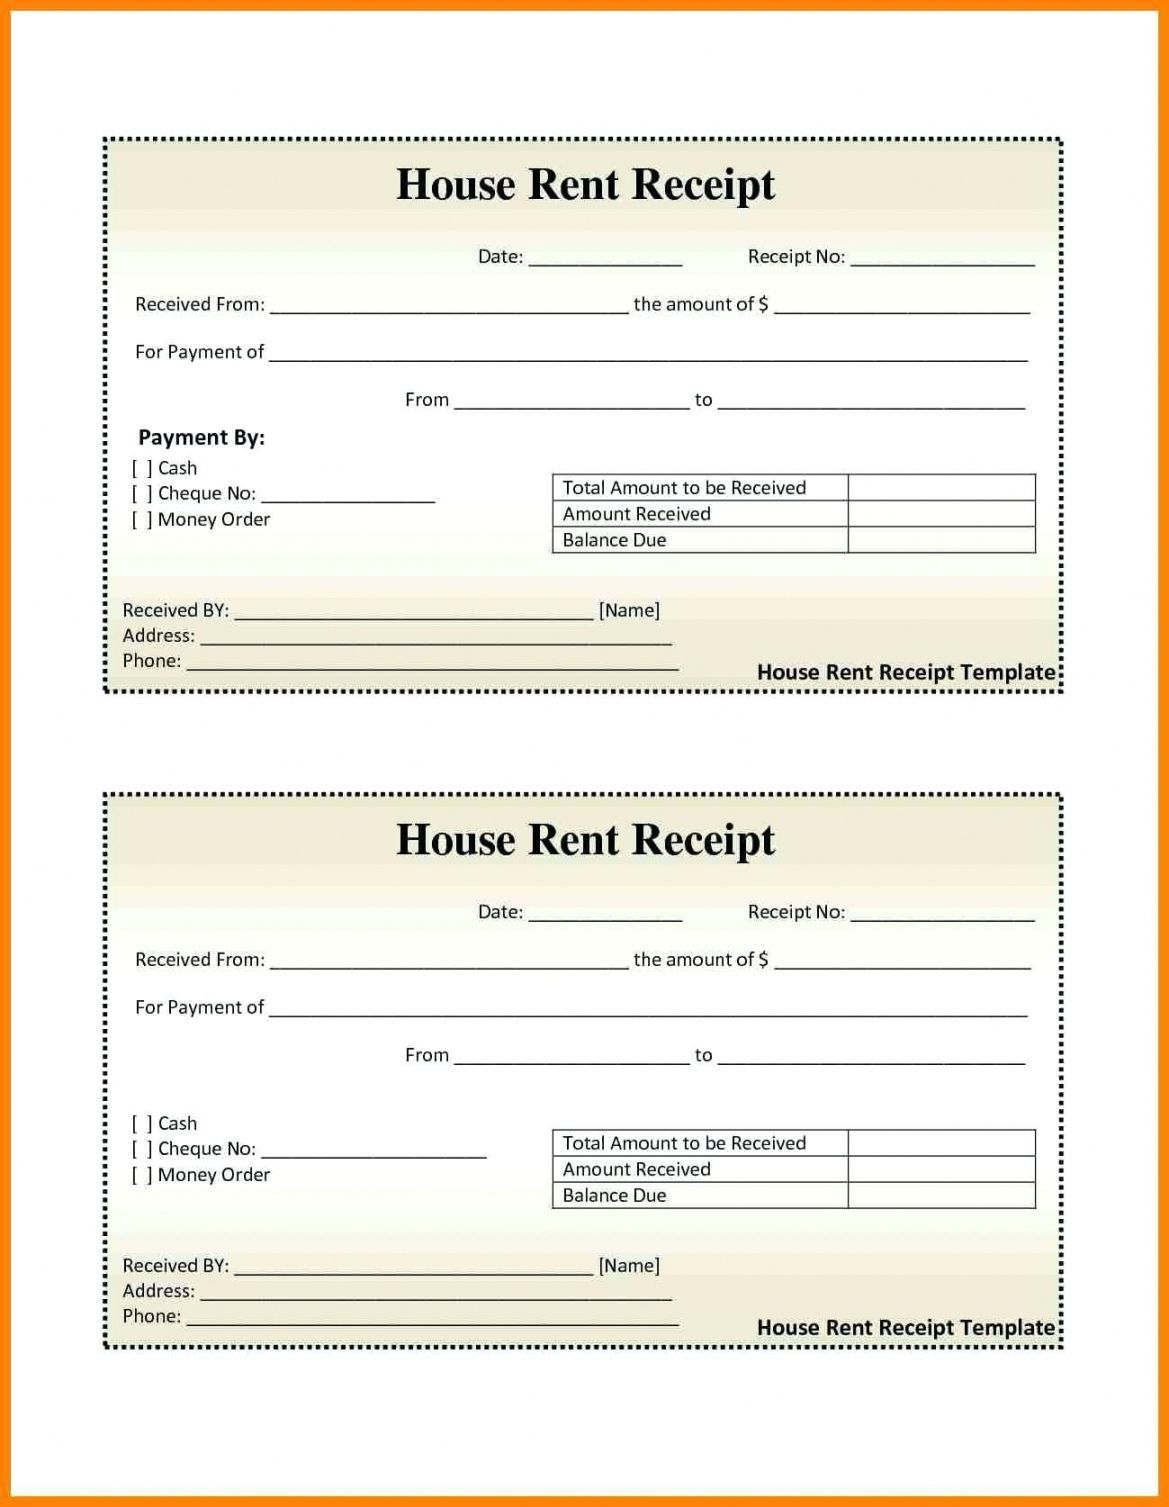 000 Excellent House Rent Receipt Sample Doc Photo  Template India Bill Format Word Document Pdf DownloadFull